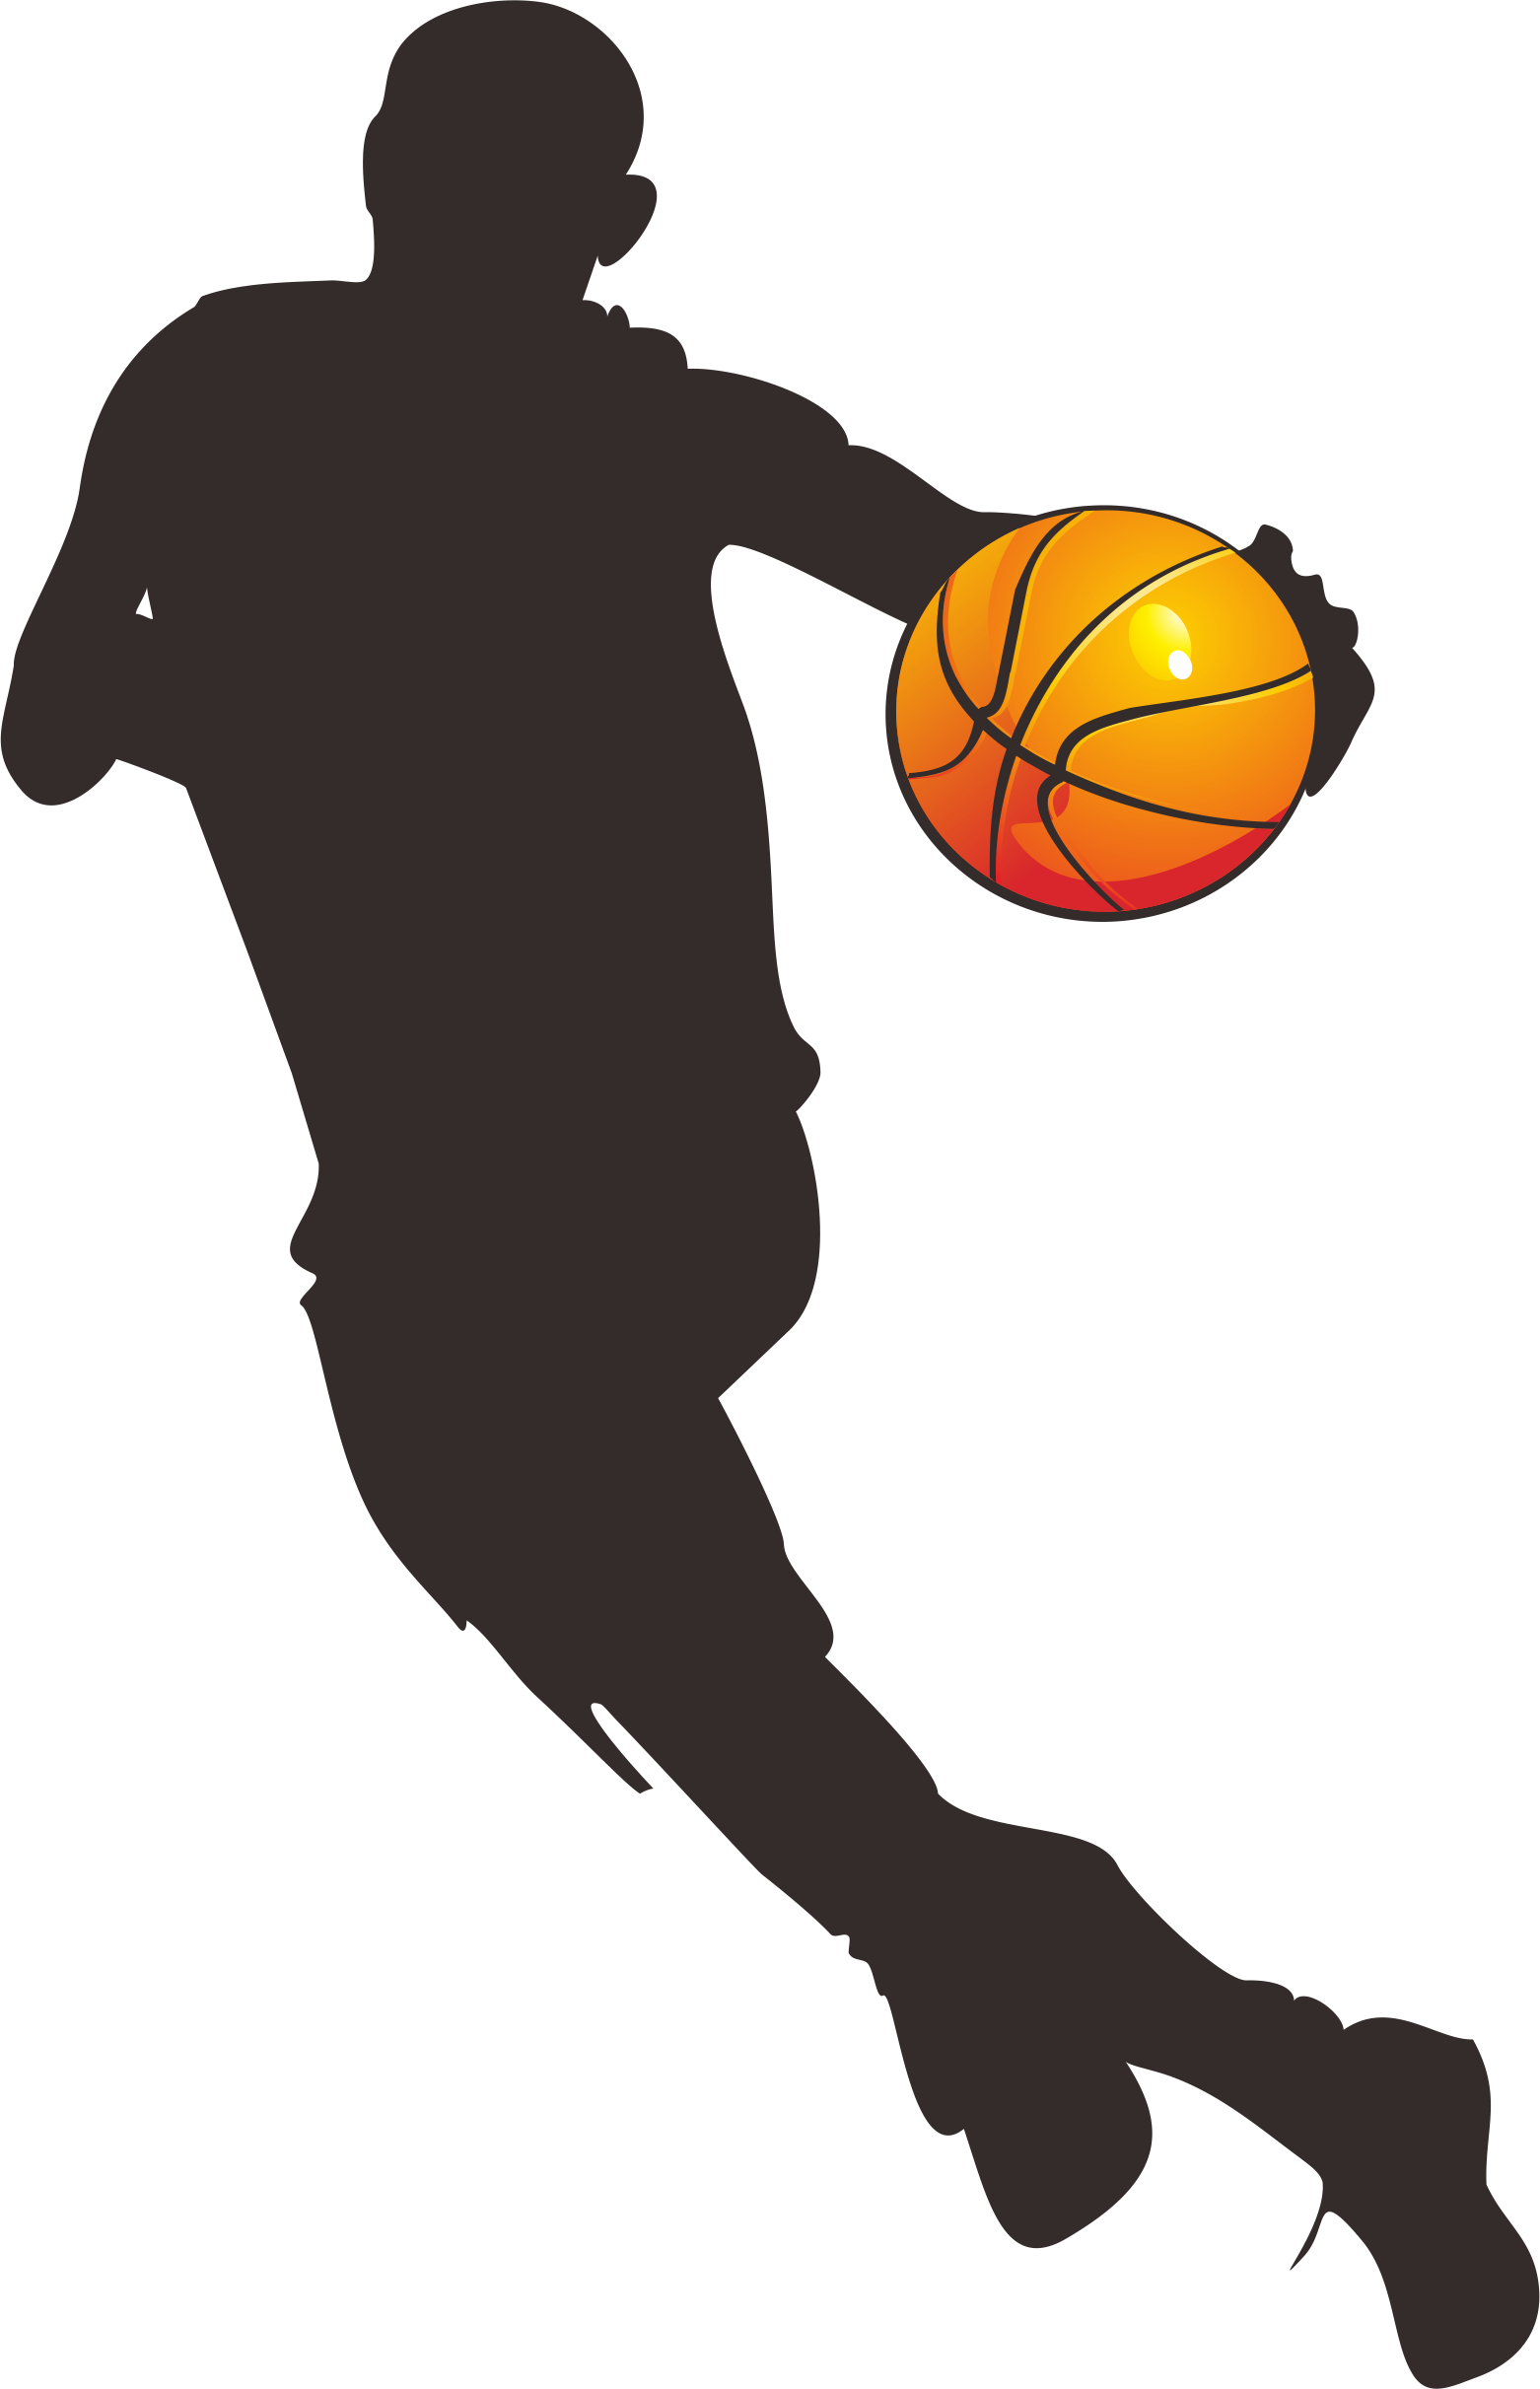 Basketball ball over court clipart. Backboard clip art transprent